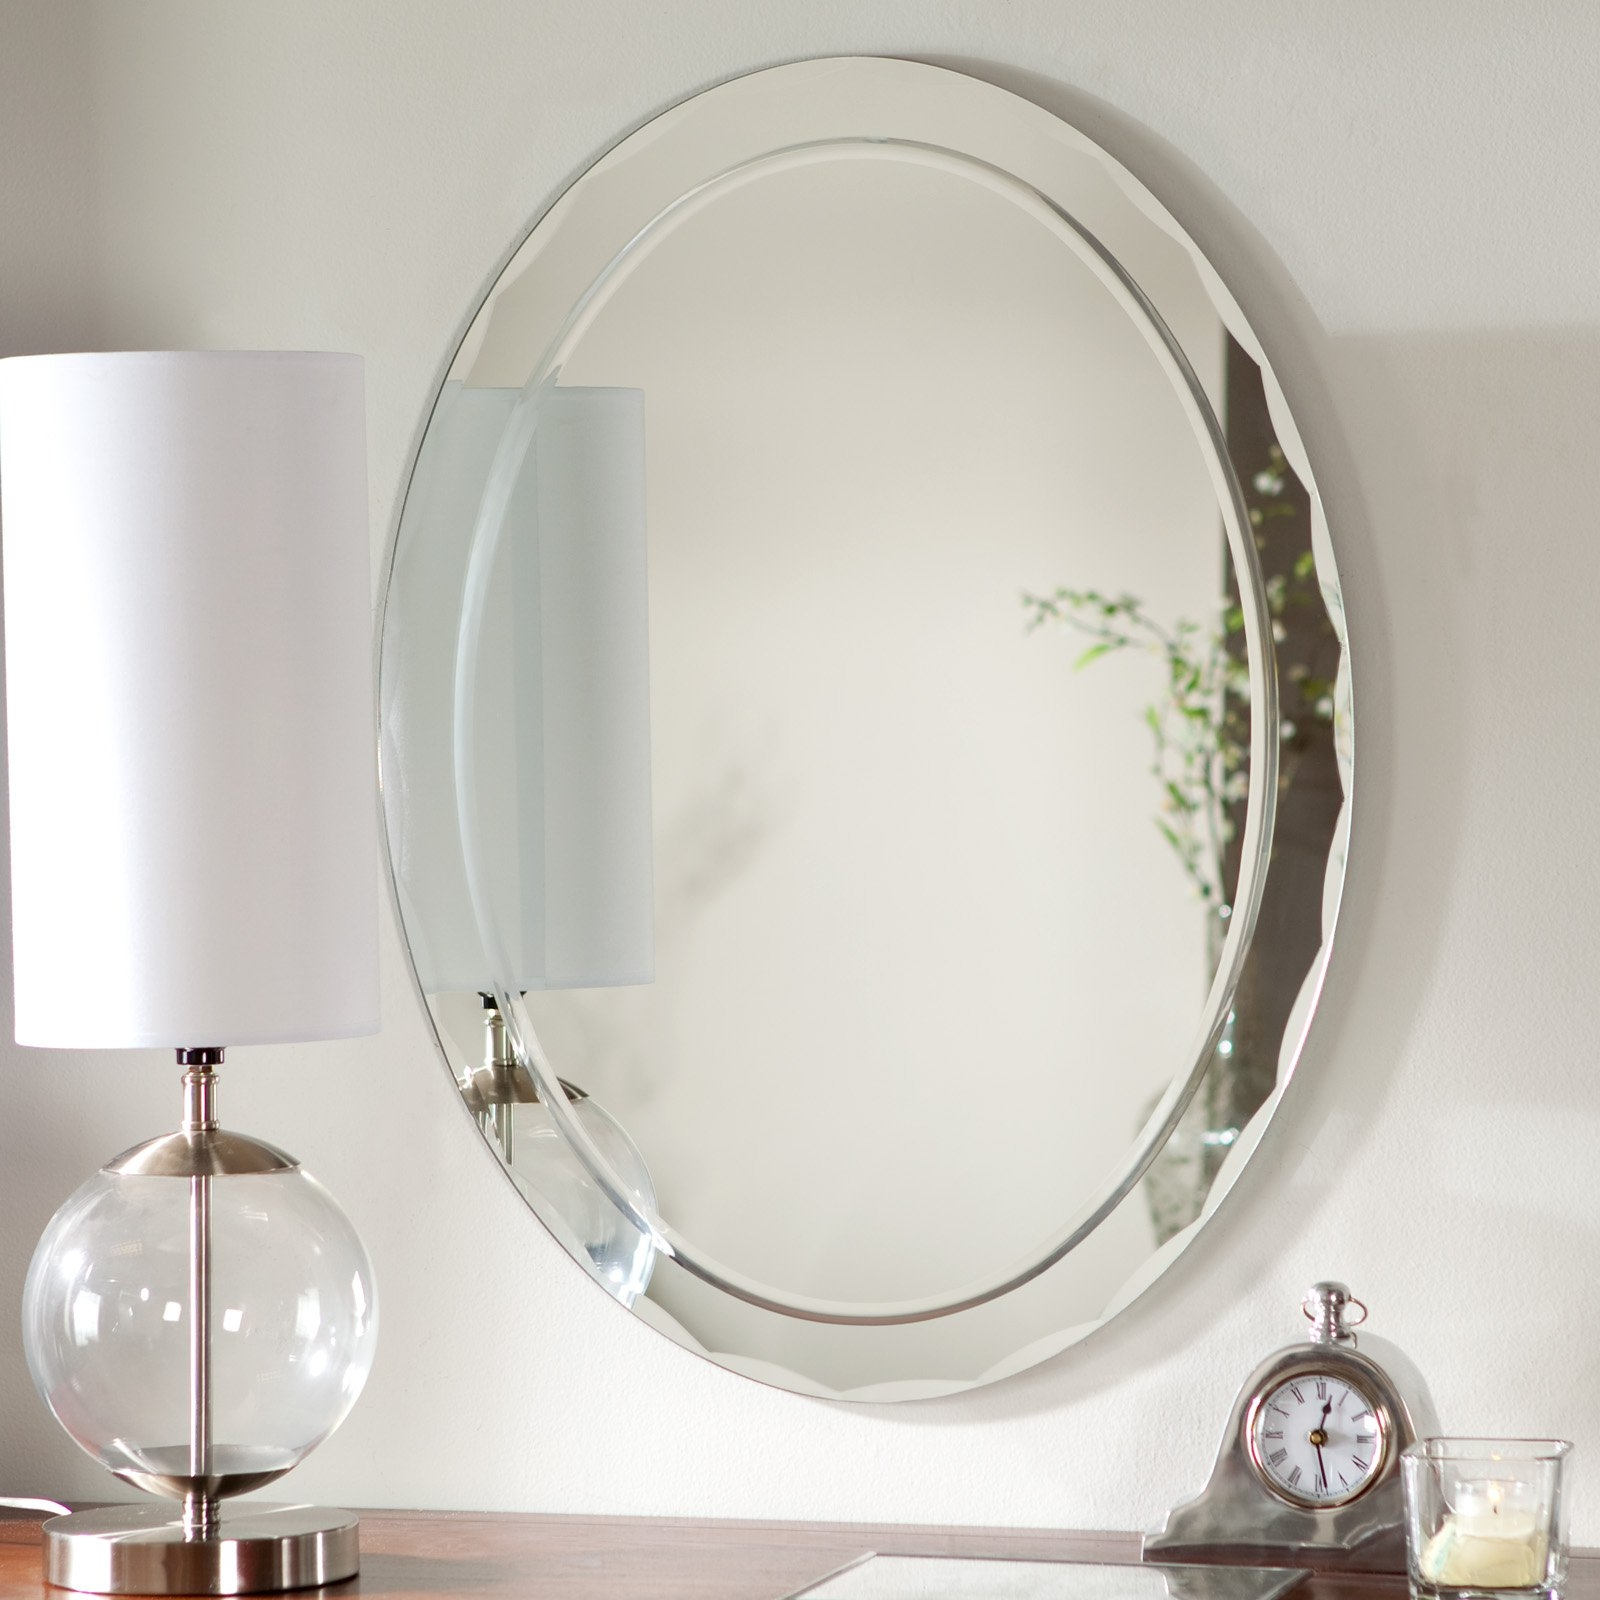 Dcor Wonderland Frameless Crystal Wall Mirror 235w X 315h In For Oval Wall Mirrors (Image 2 of 15)